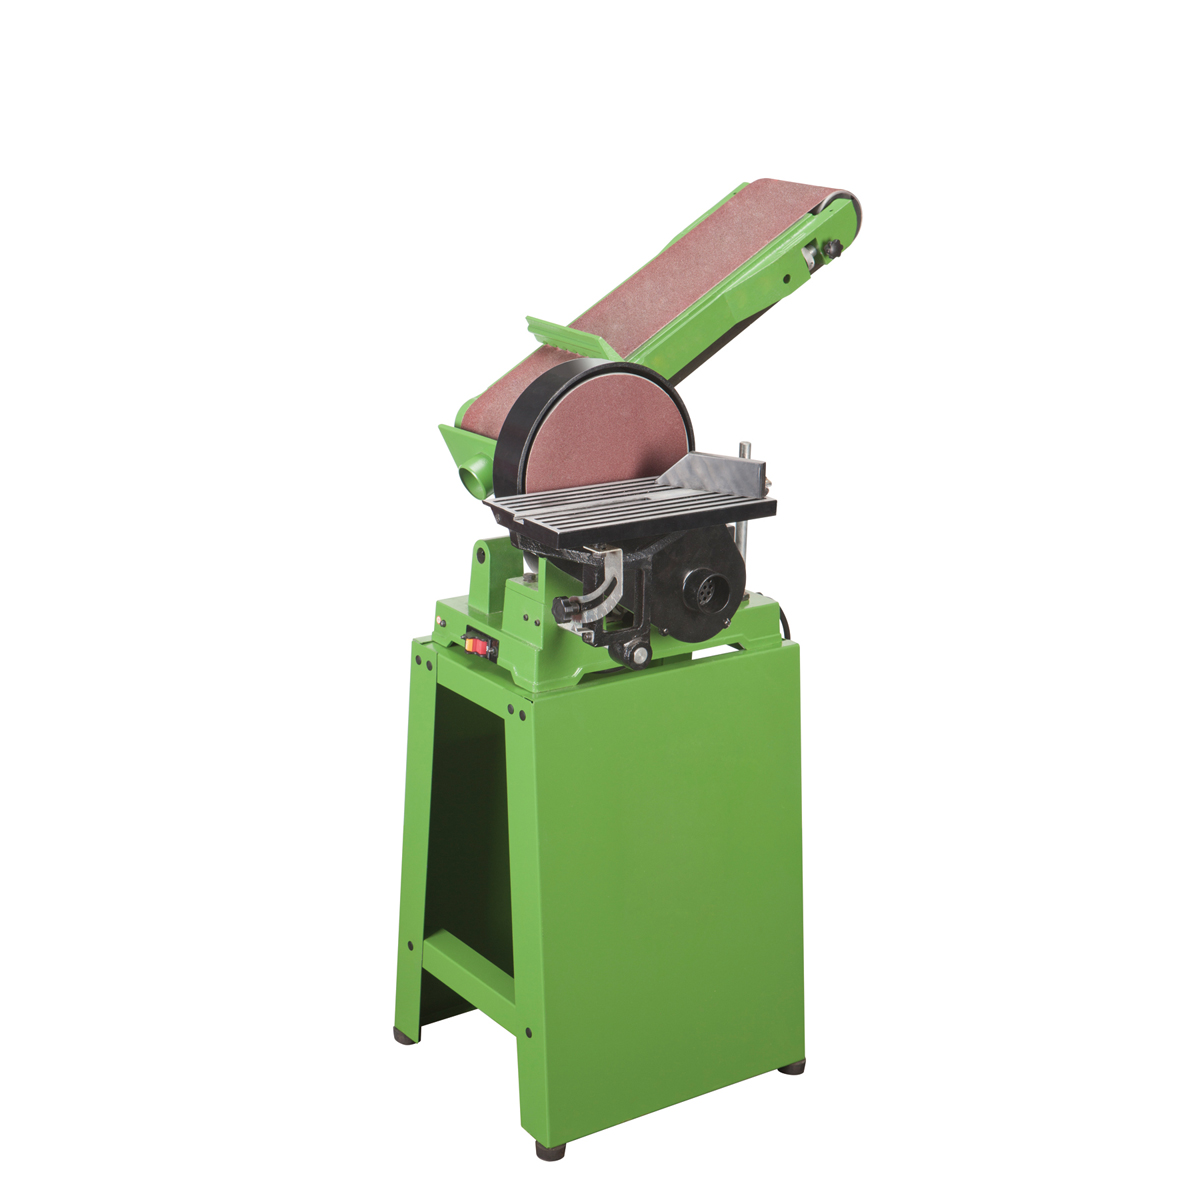 6 In X 9 In Combination Belt And Disc Sander